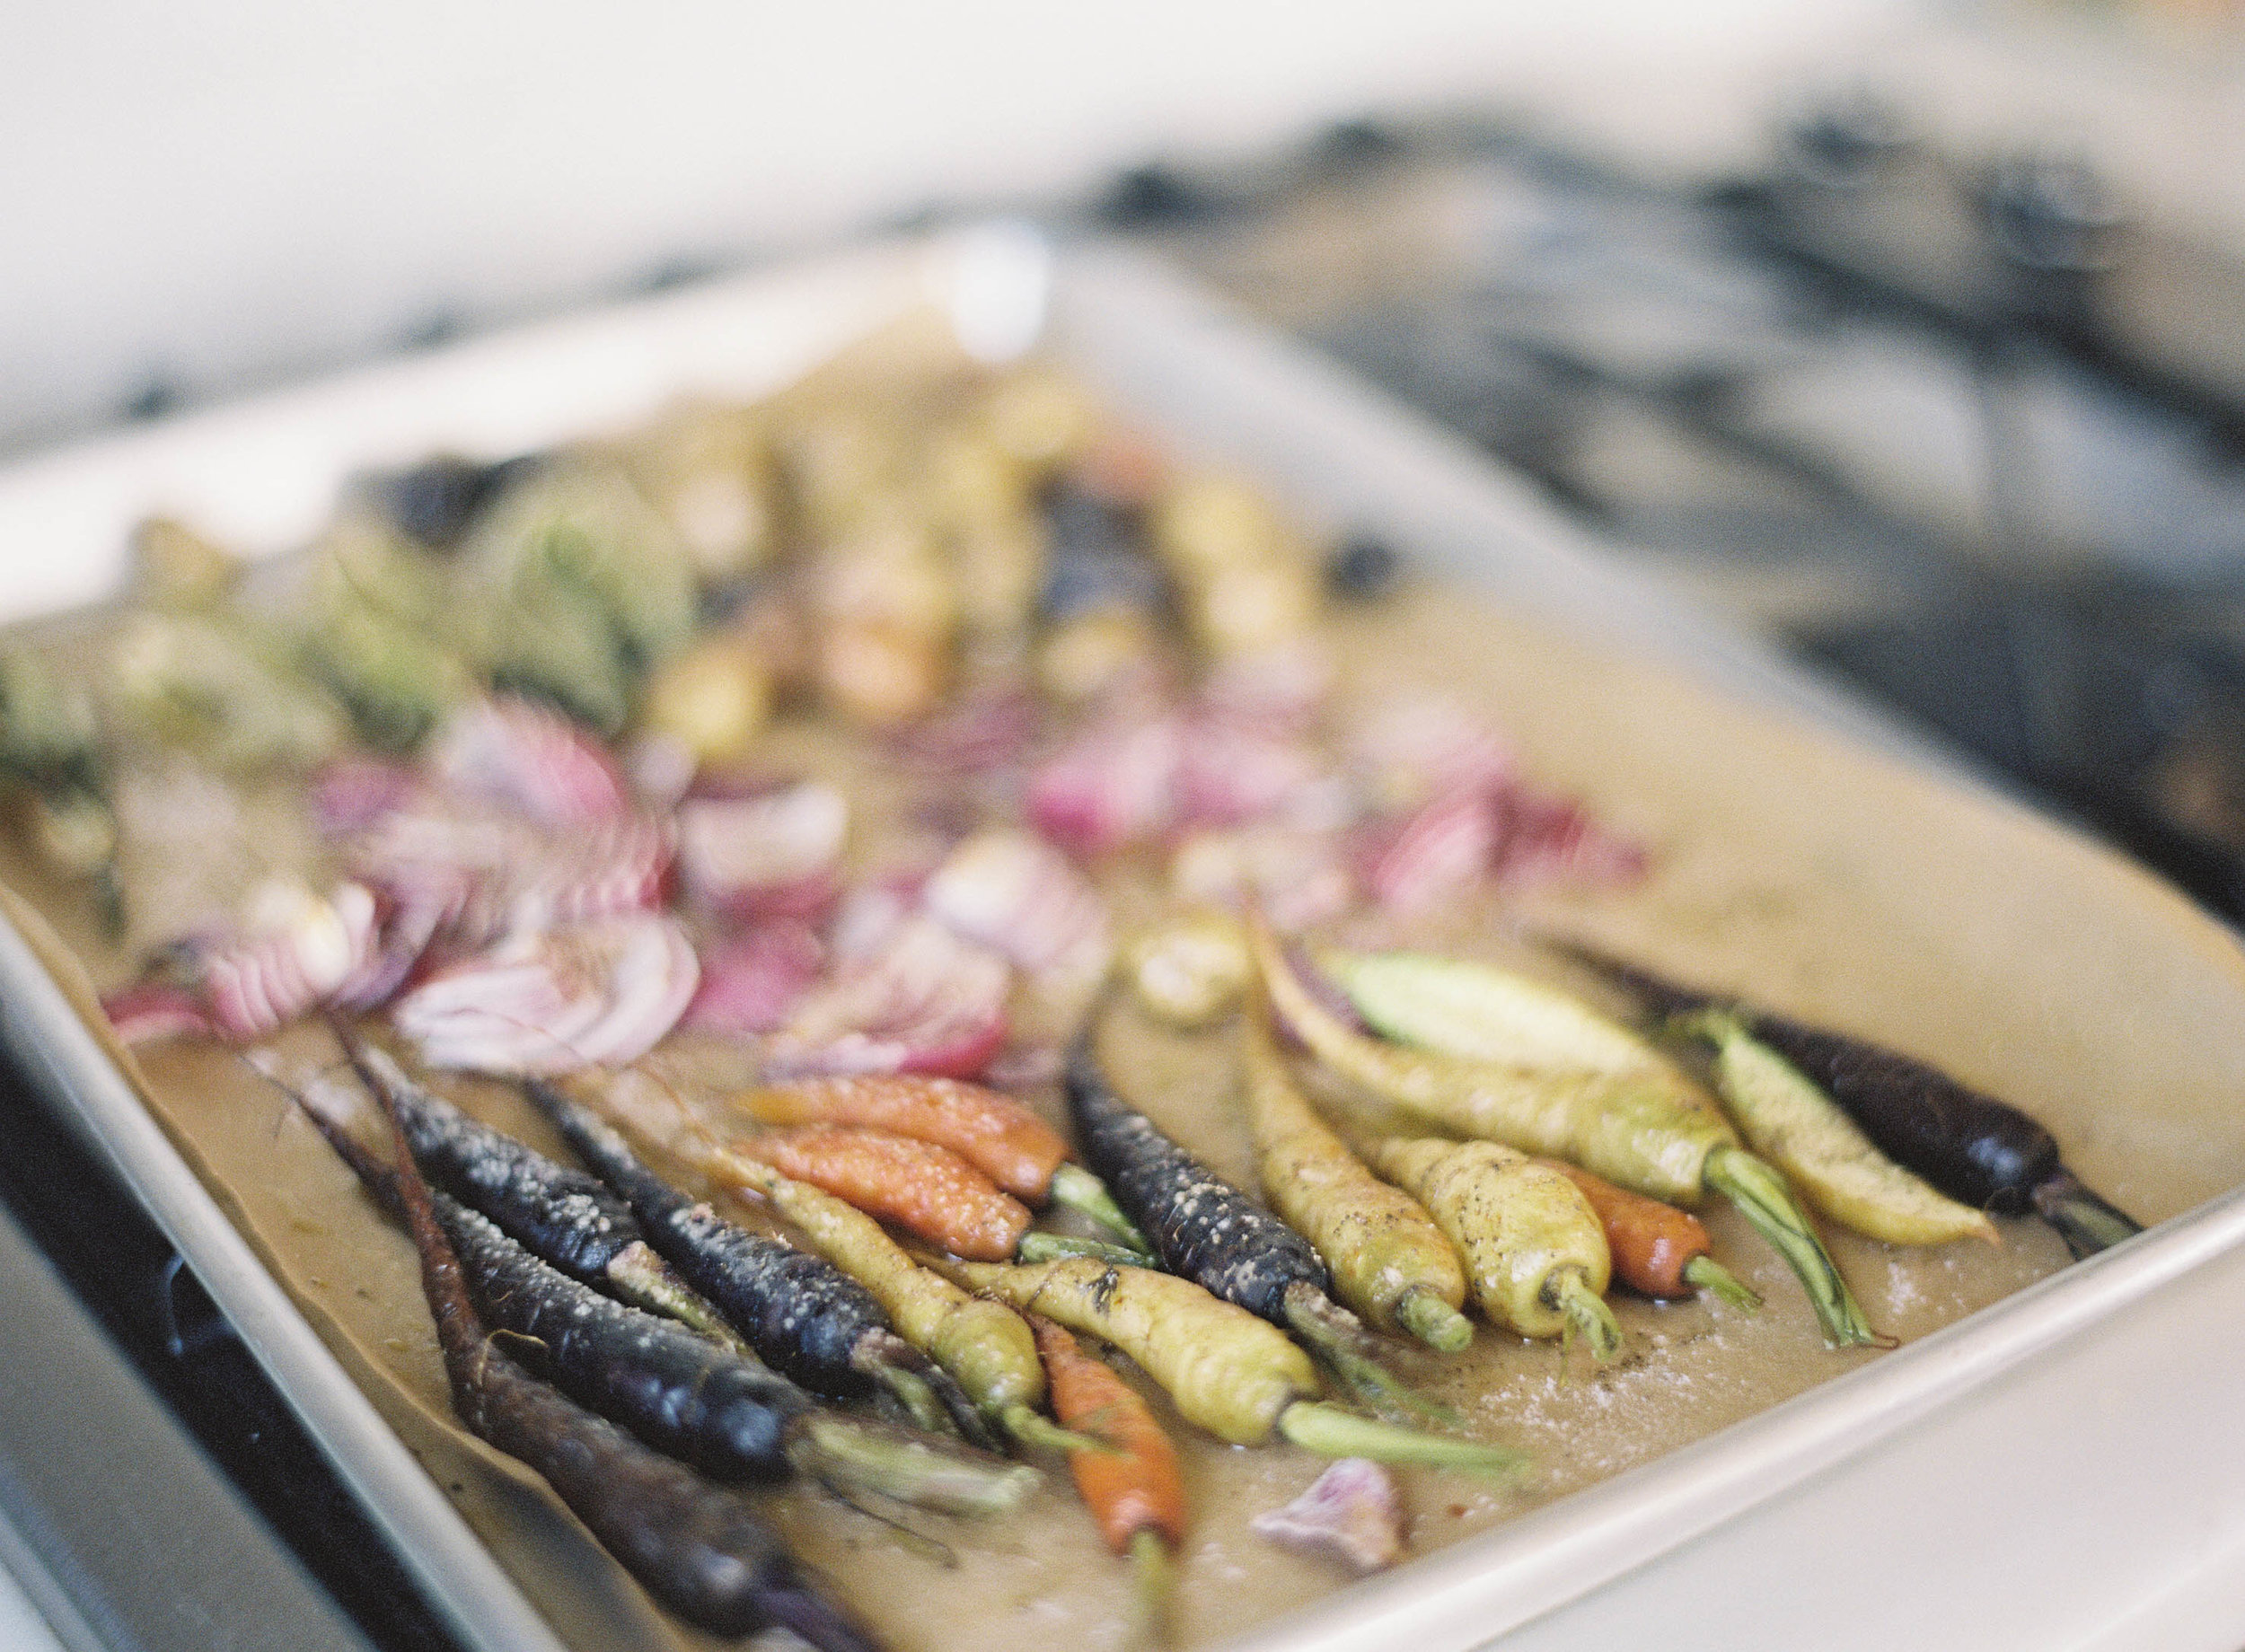 4. - Roast. Cover several cooking pans with wax paper and arrange your vegetables and garnishes on them. Wrap your fish in foil on another pan. Roast the vegetables in the oven at 450 degrees for 20 minutes, stirring occasionally. Bake your fish for 15 minutes (although you may want to adjust the timing based on the size of your fish).